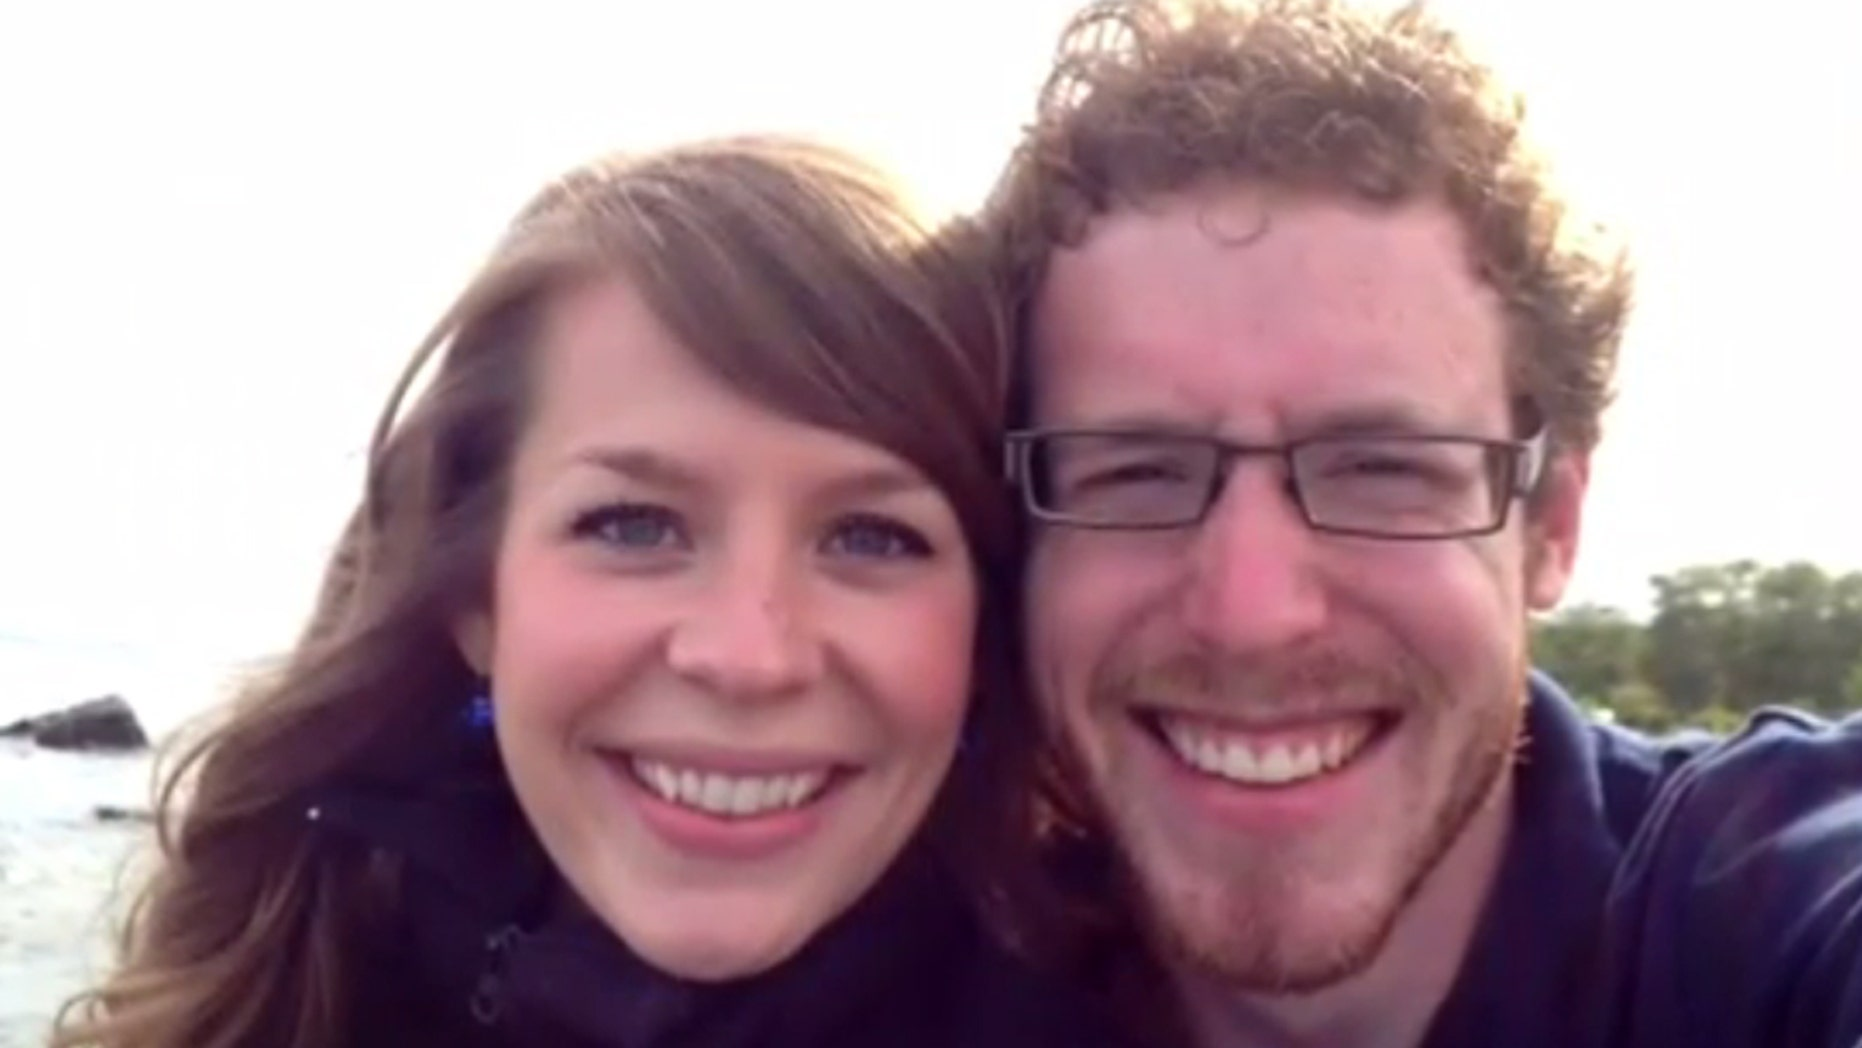 Johanna Watkins started experiencing symptoms shortly after marrying her husband Scott.